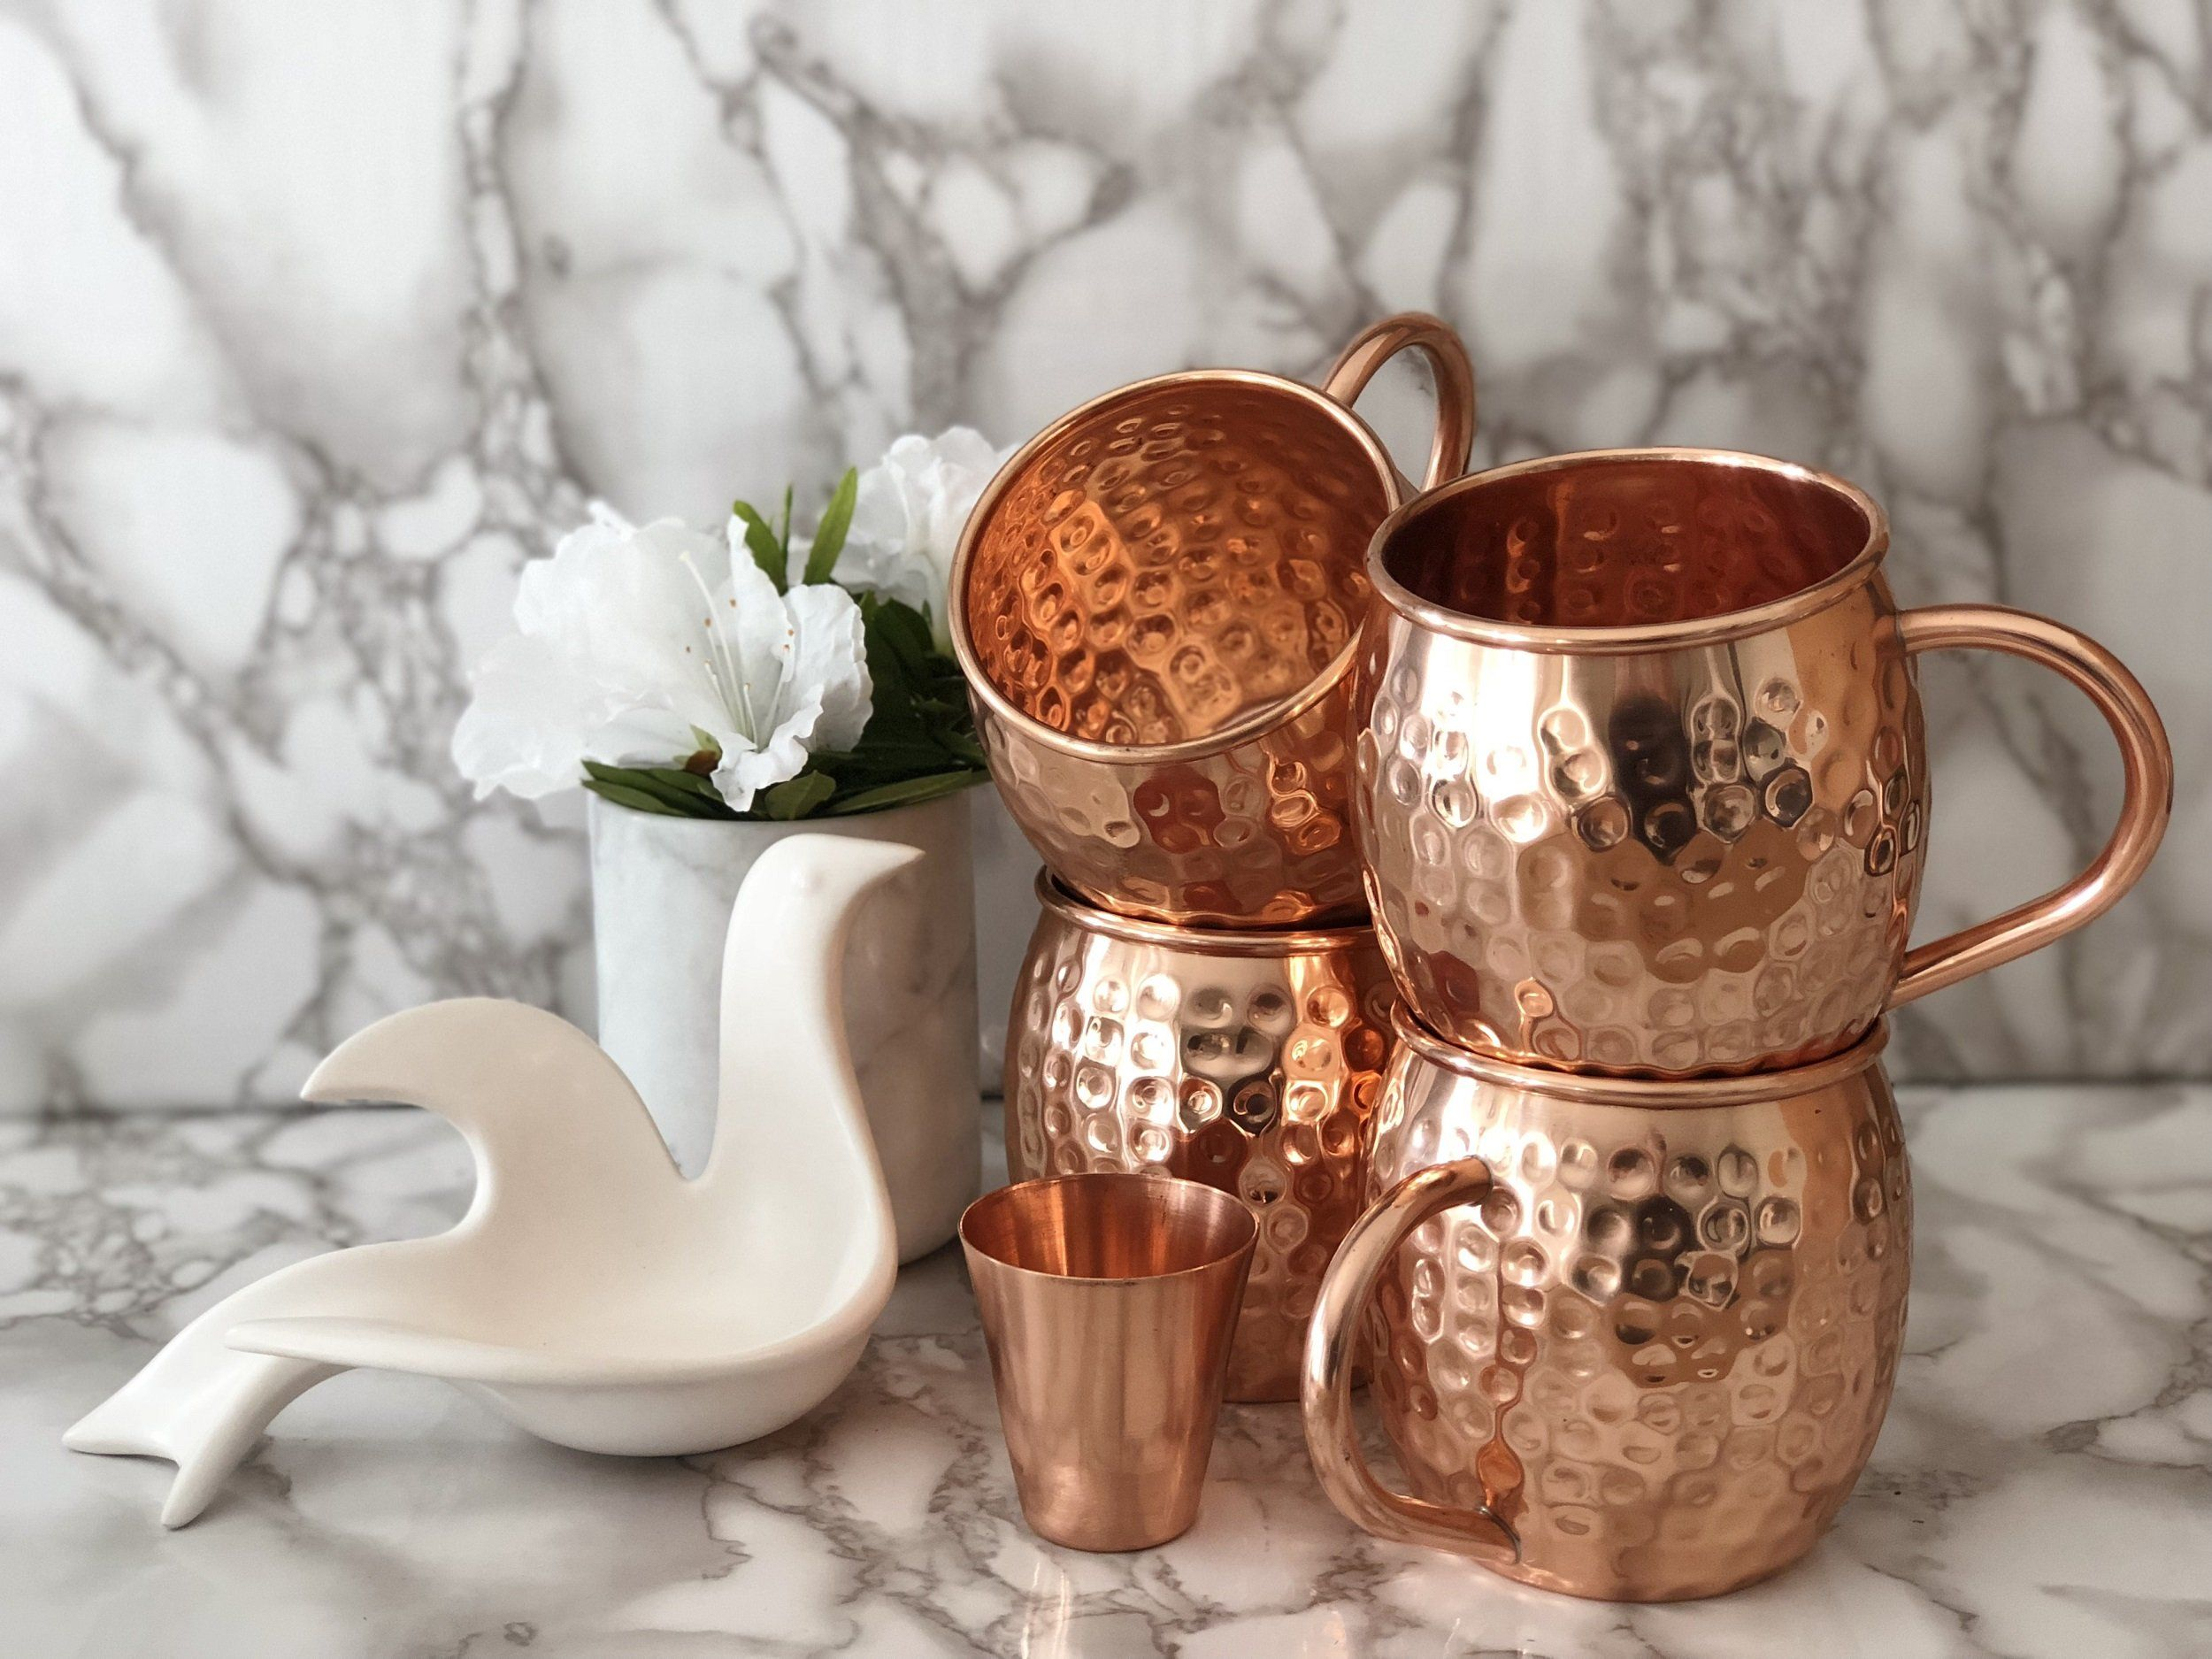 Urban Vintage LA Moscow Mule Copper Mugs Set of 4 With Shot-glass in White and Gray Marble Background